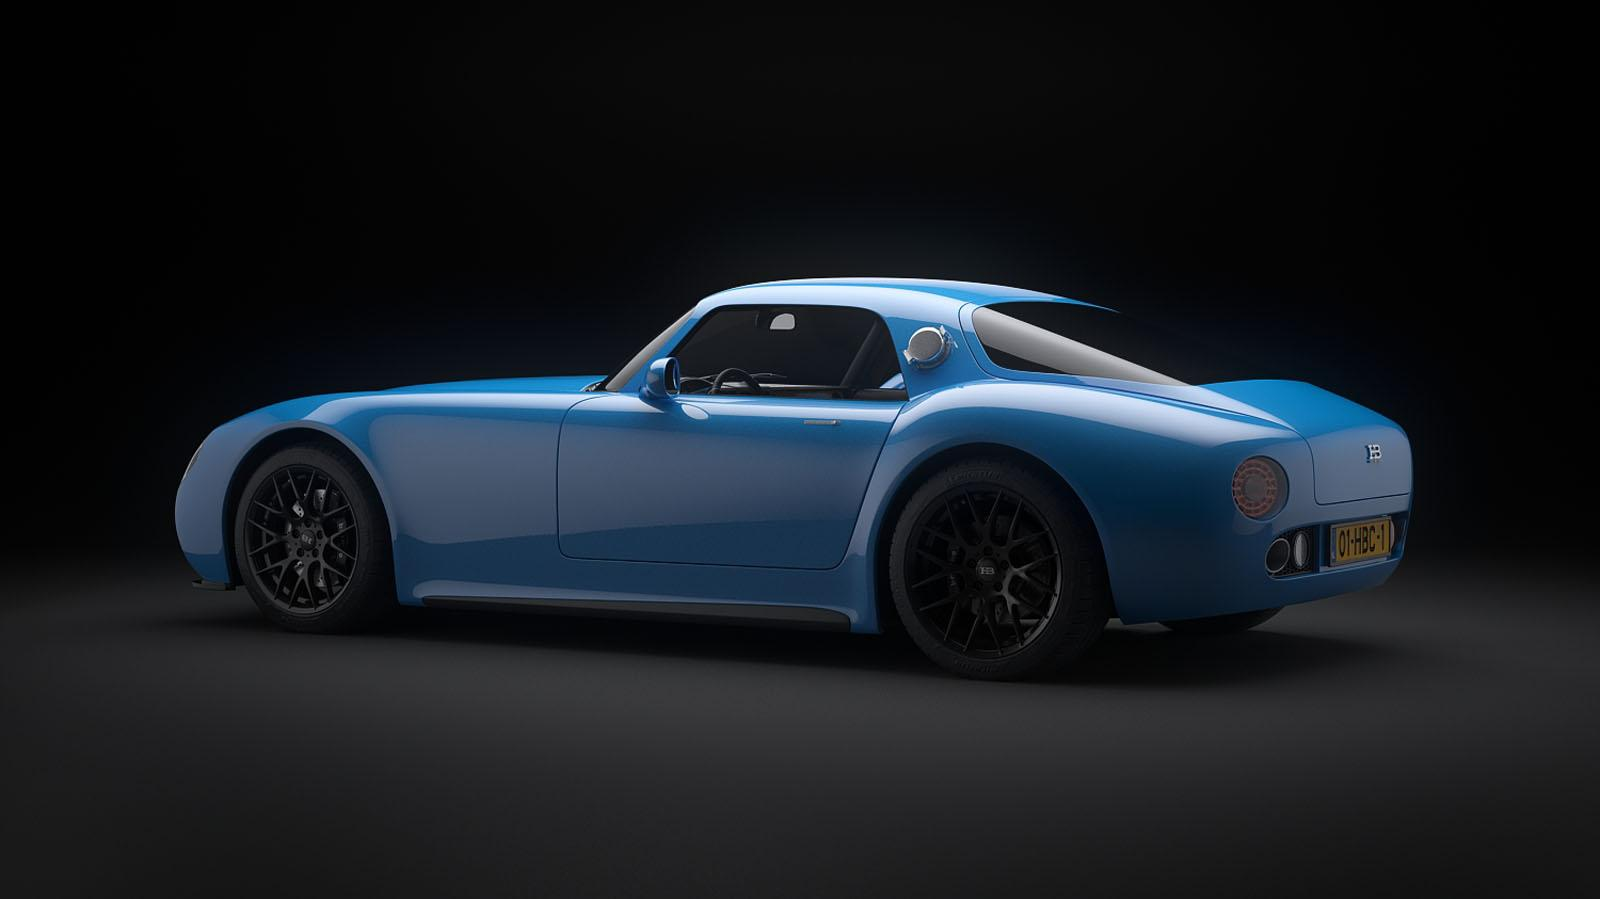 New 2015 Mazda Mx 5 To Become Custom Retro Sports Car By